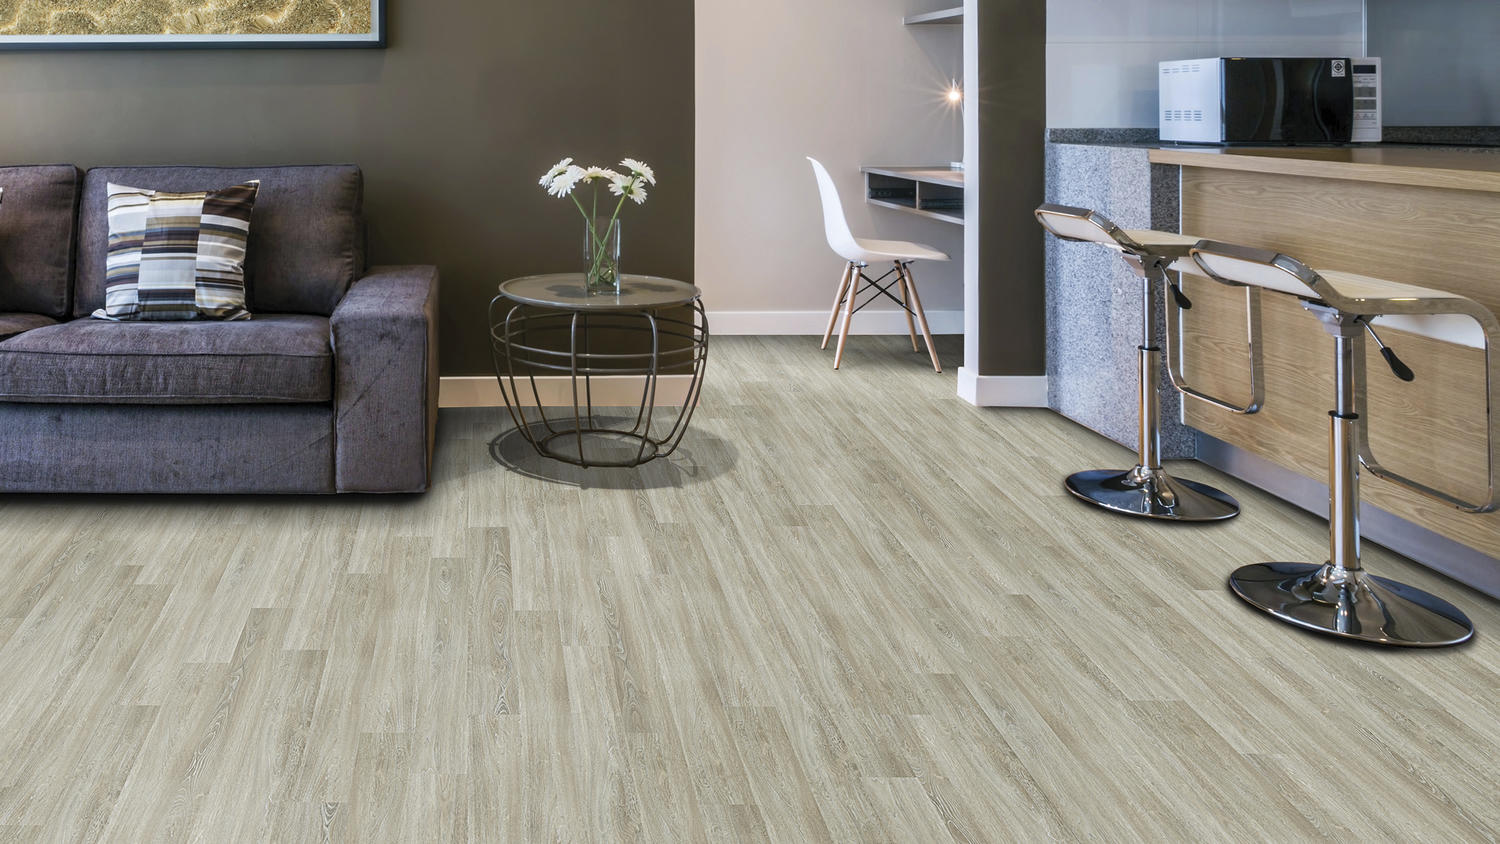 acadia flooring detail fiber series kitchen tarkett floor